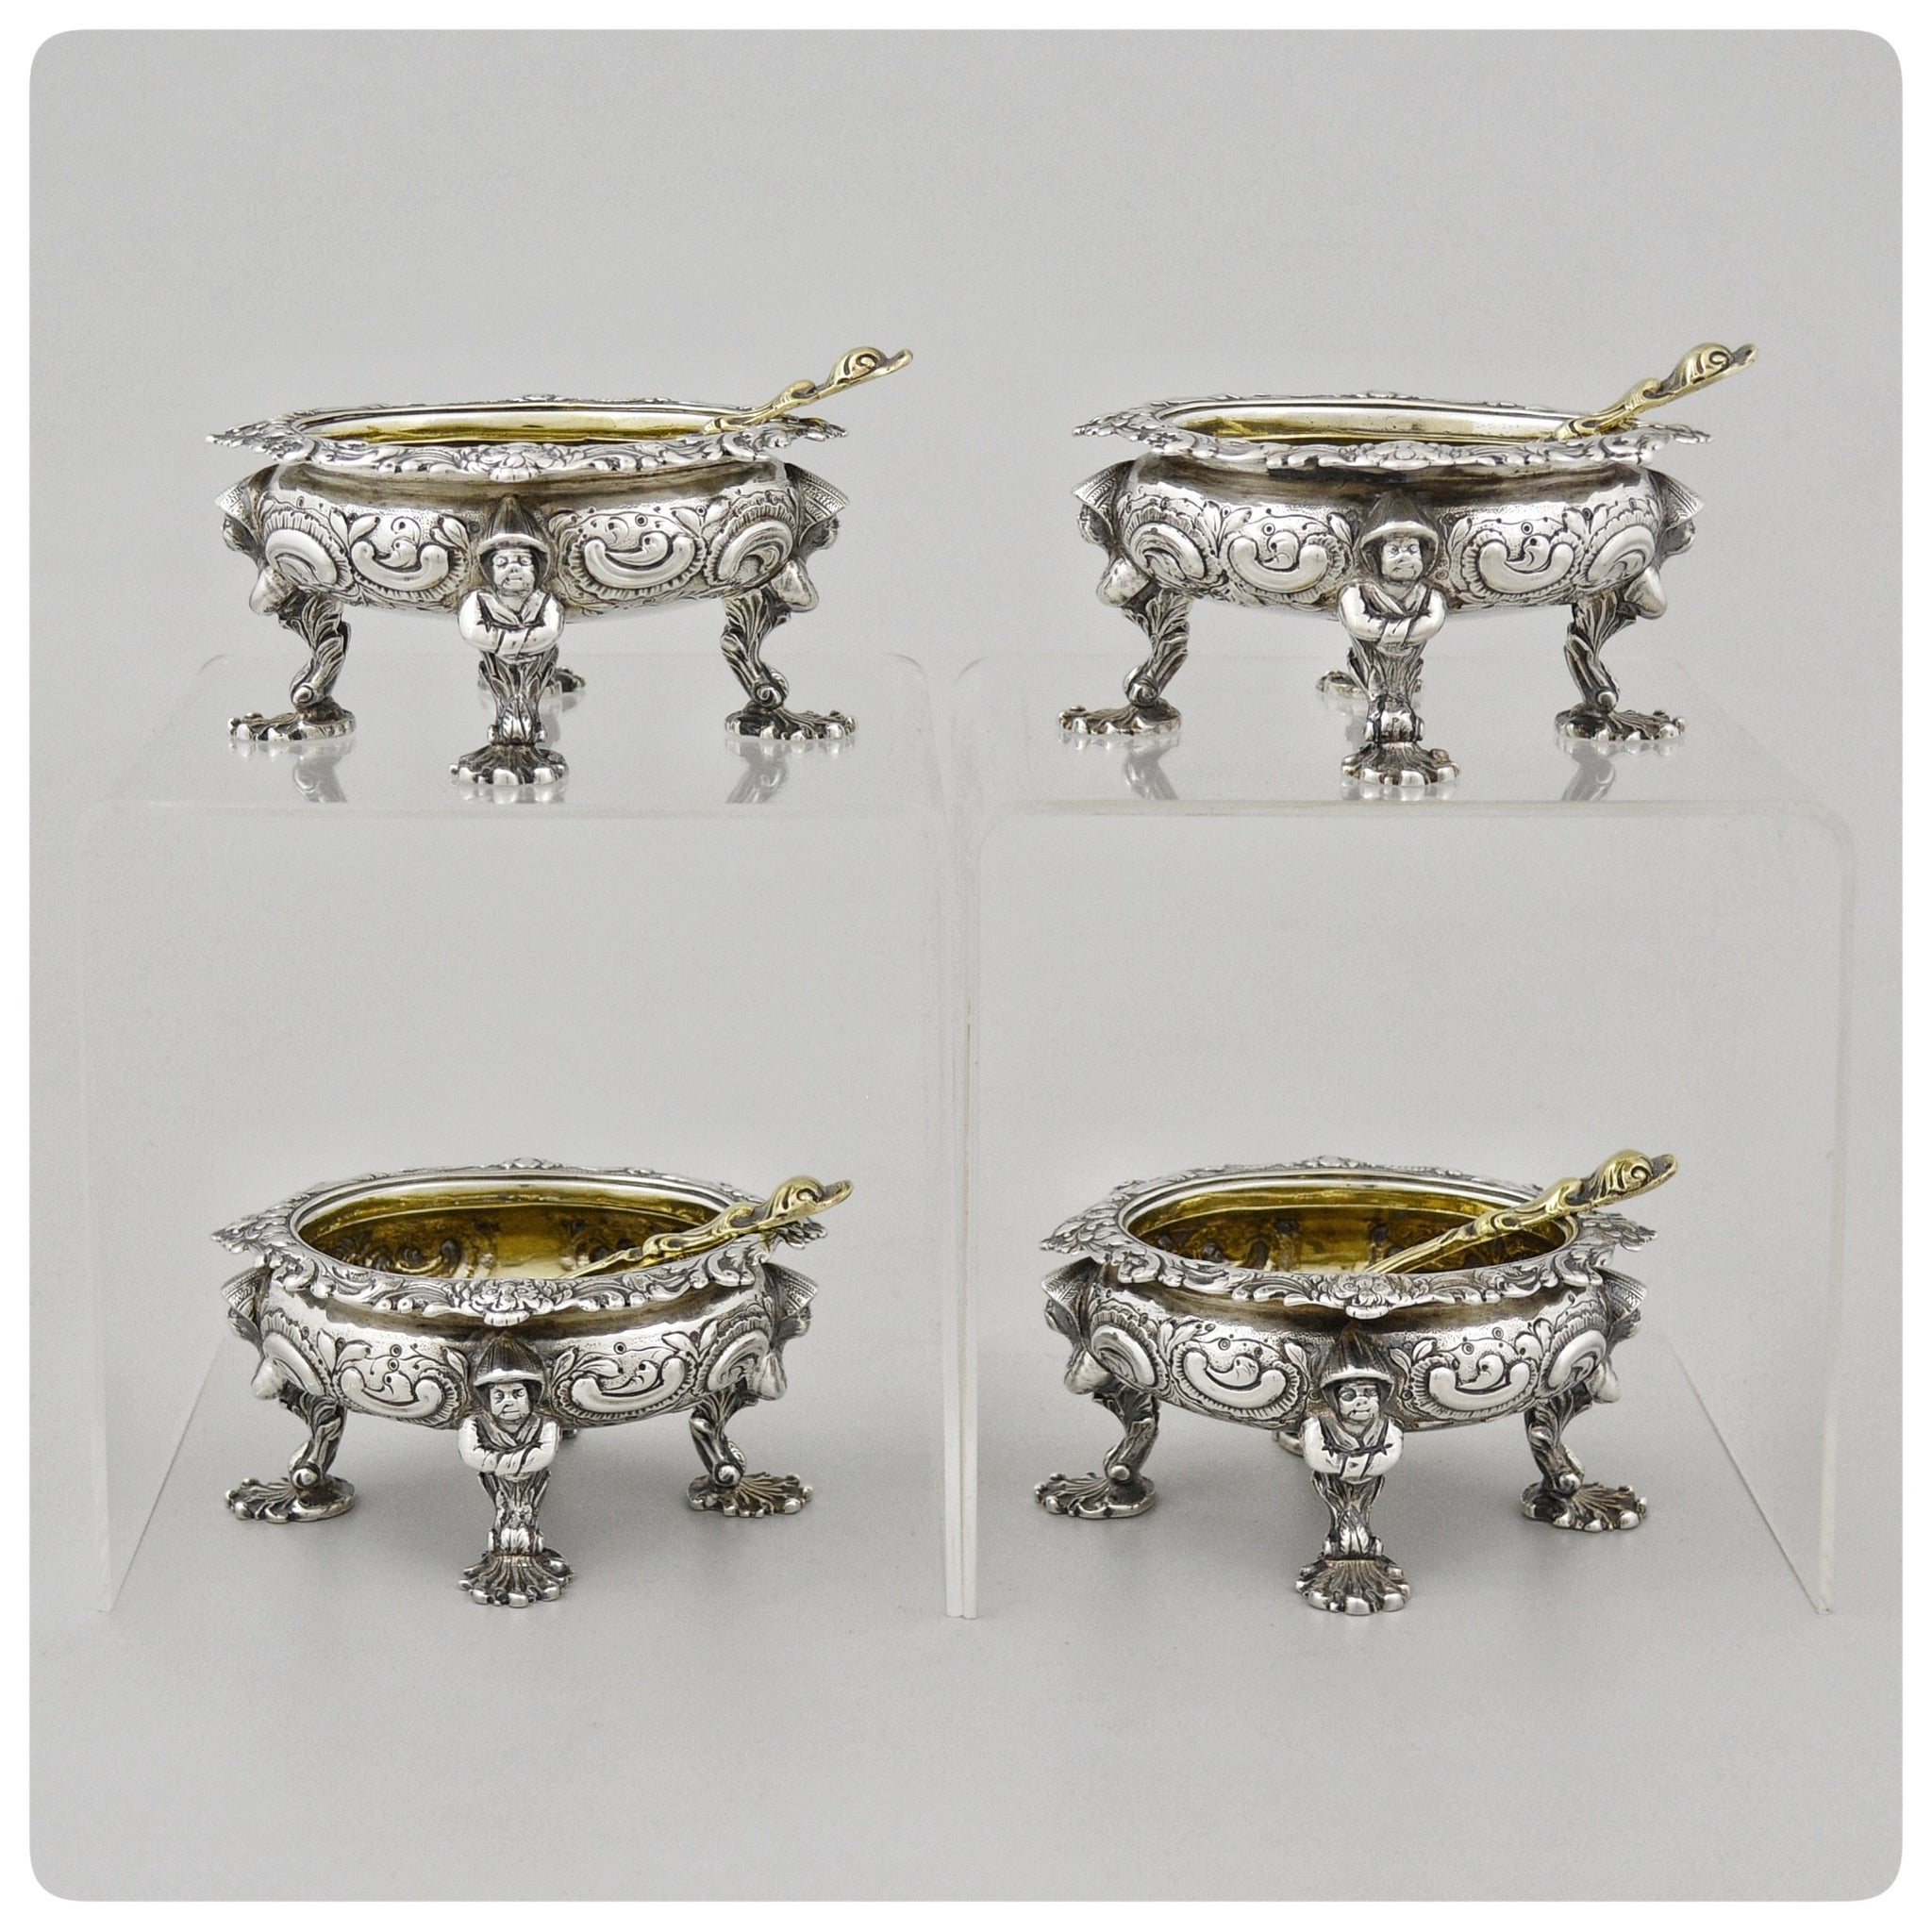 "Four English Sterling Silver Chinoiserie Salt Cellars, Rebecca Emes and Edward Barnard, London, 1817-1818  with Accompanying Spoons Marked ""GF"" - The Silver Vault of Charleston"